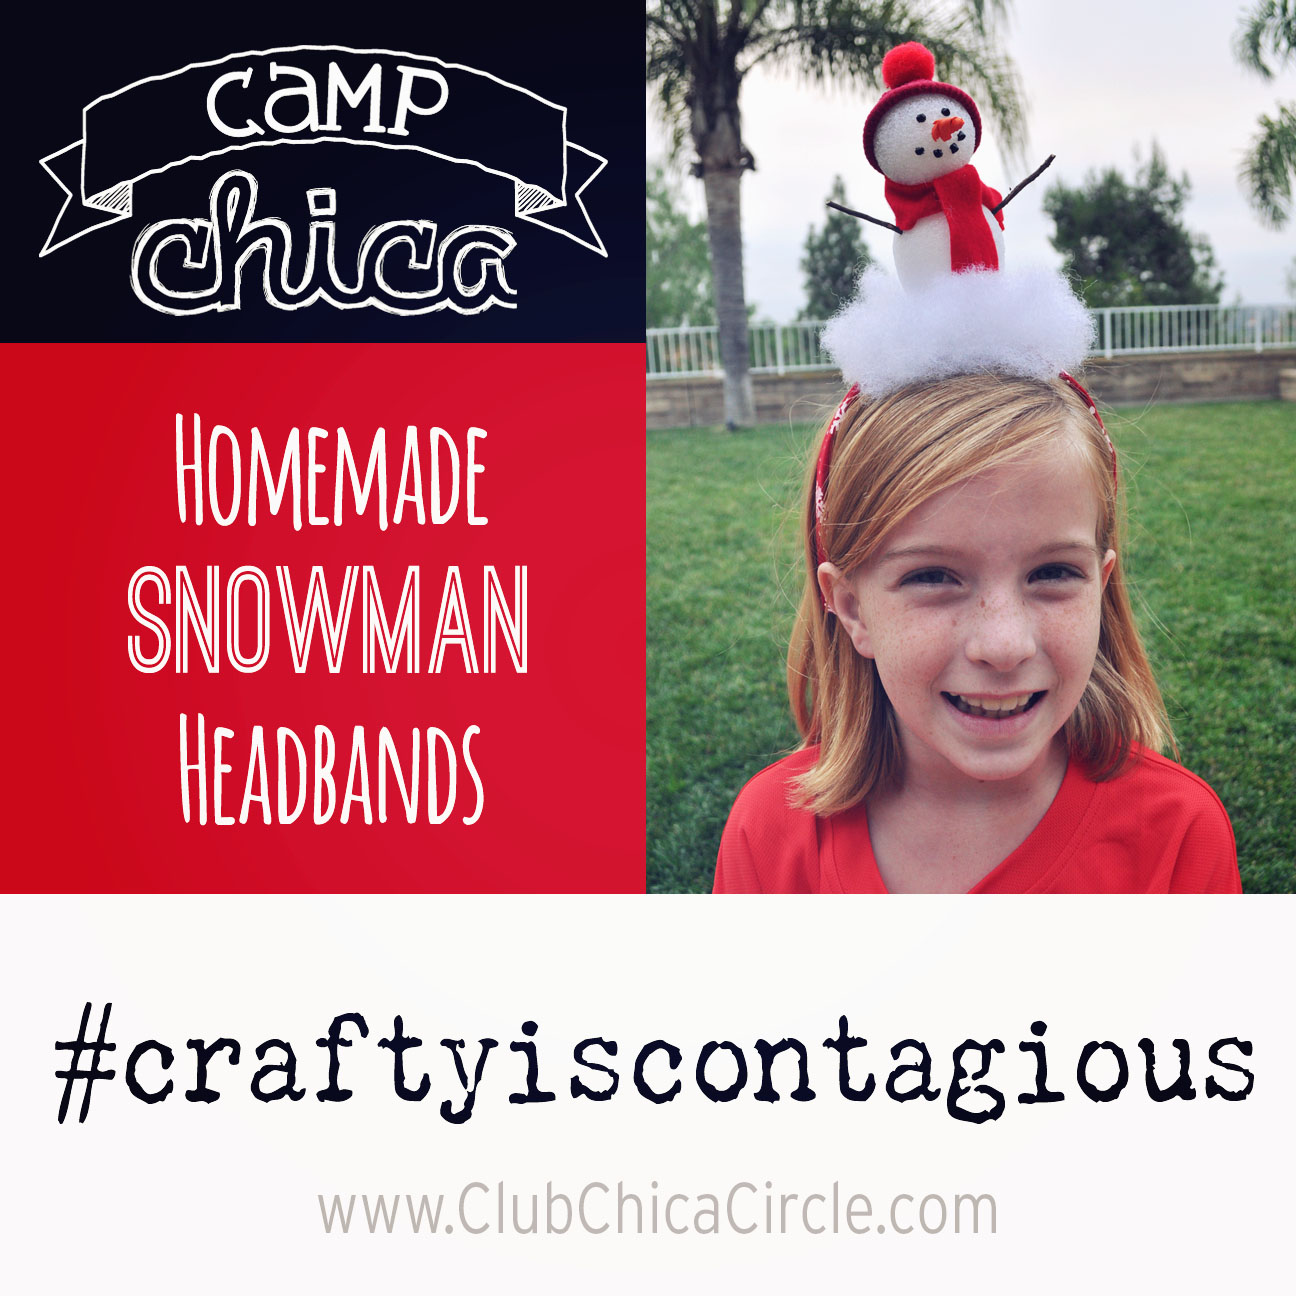 Turn heads with this adorable snowman headband tutorial-  Camp Chica